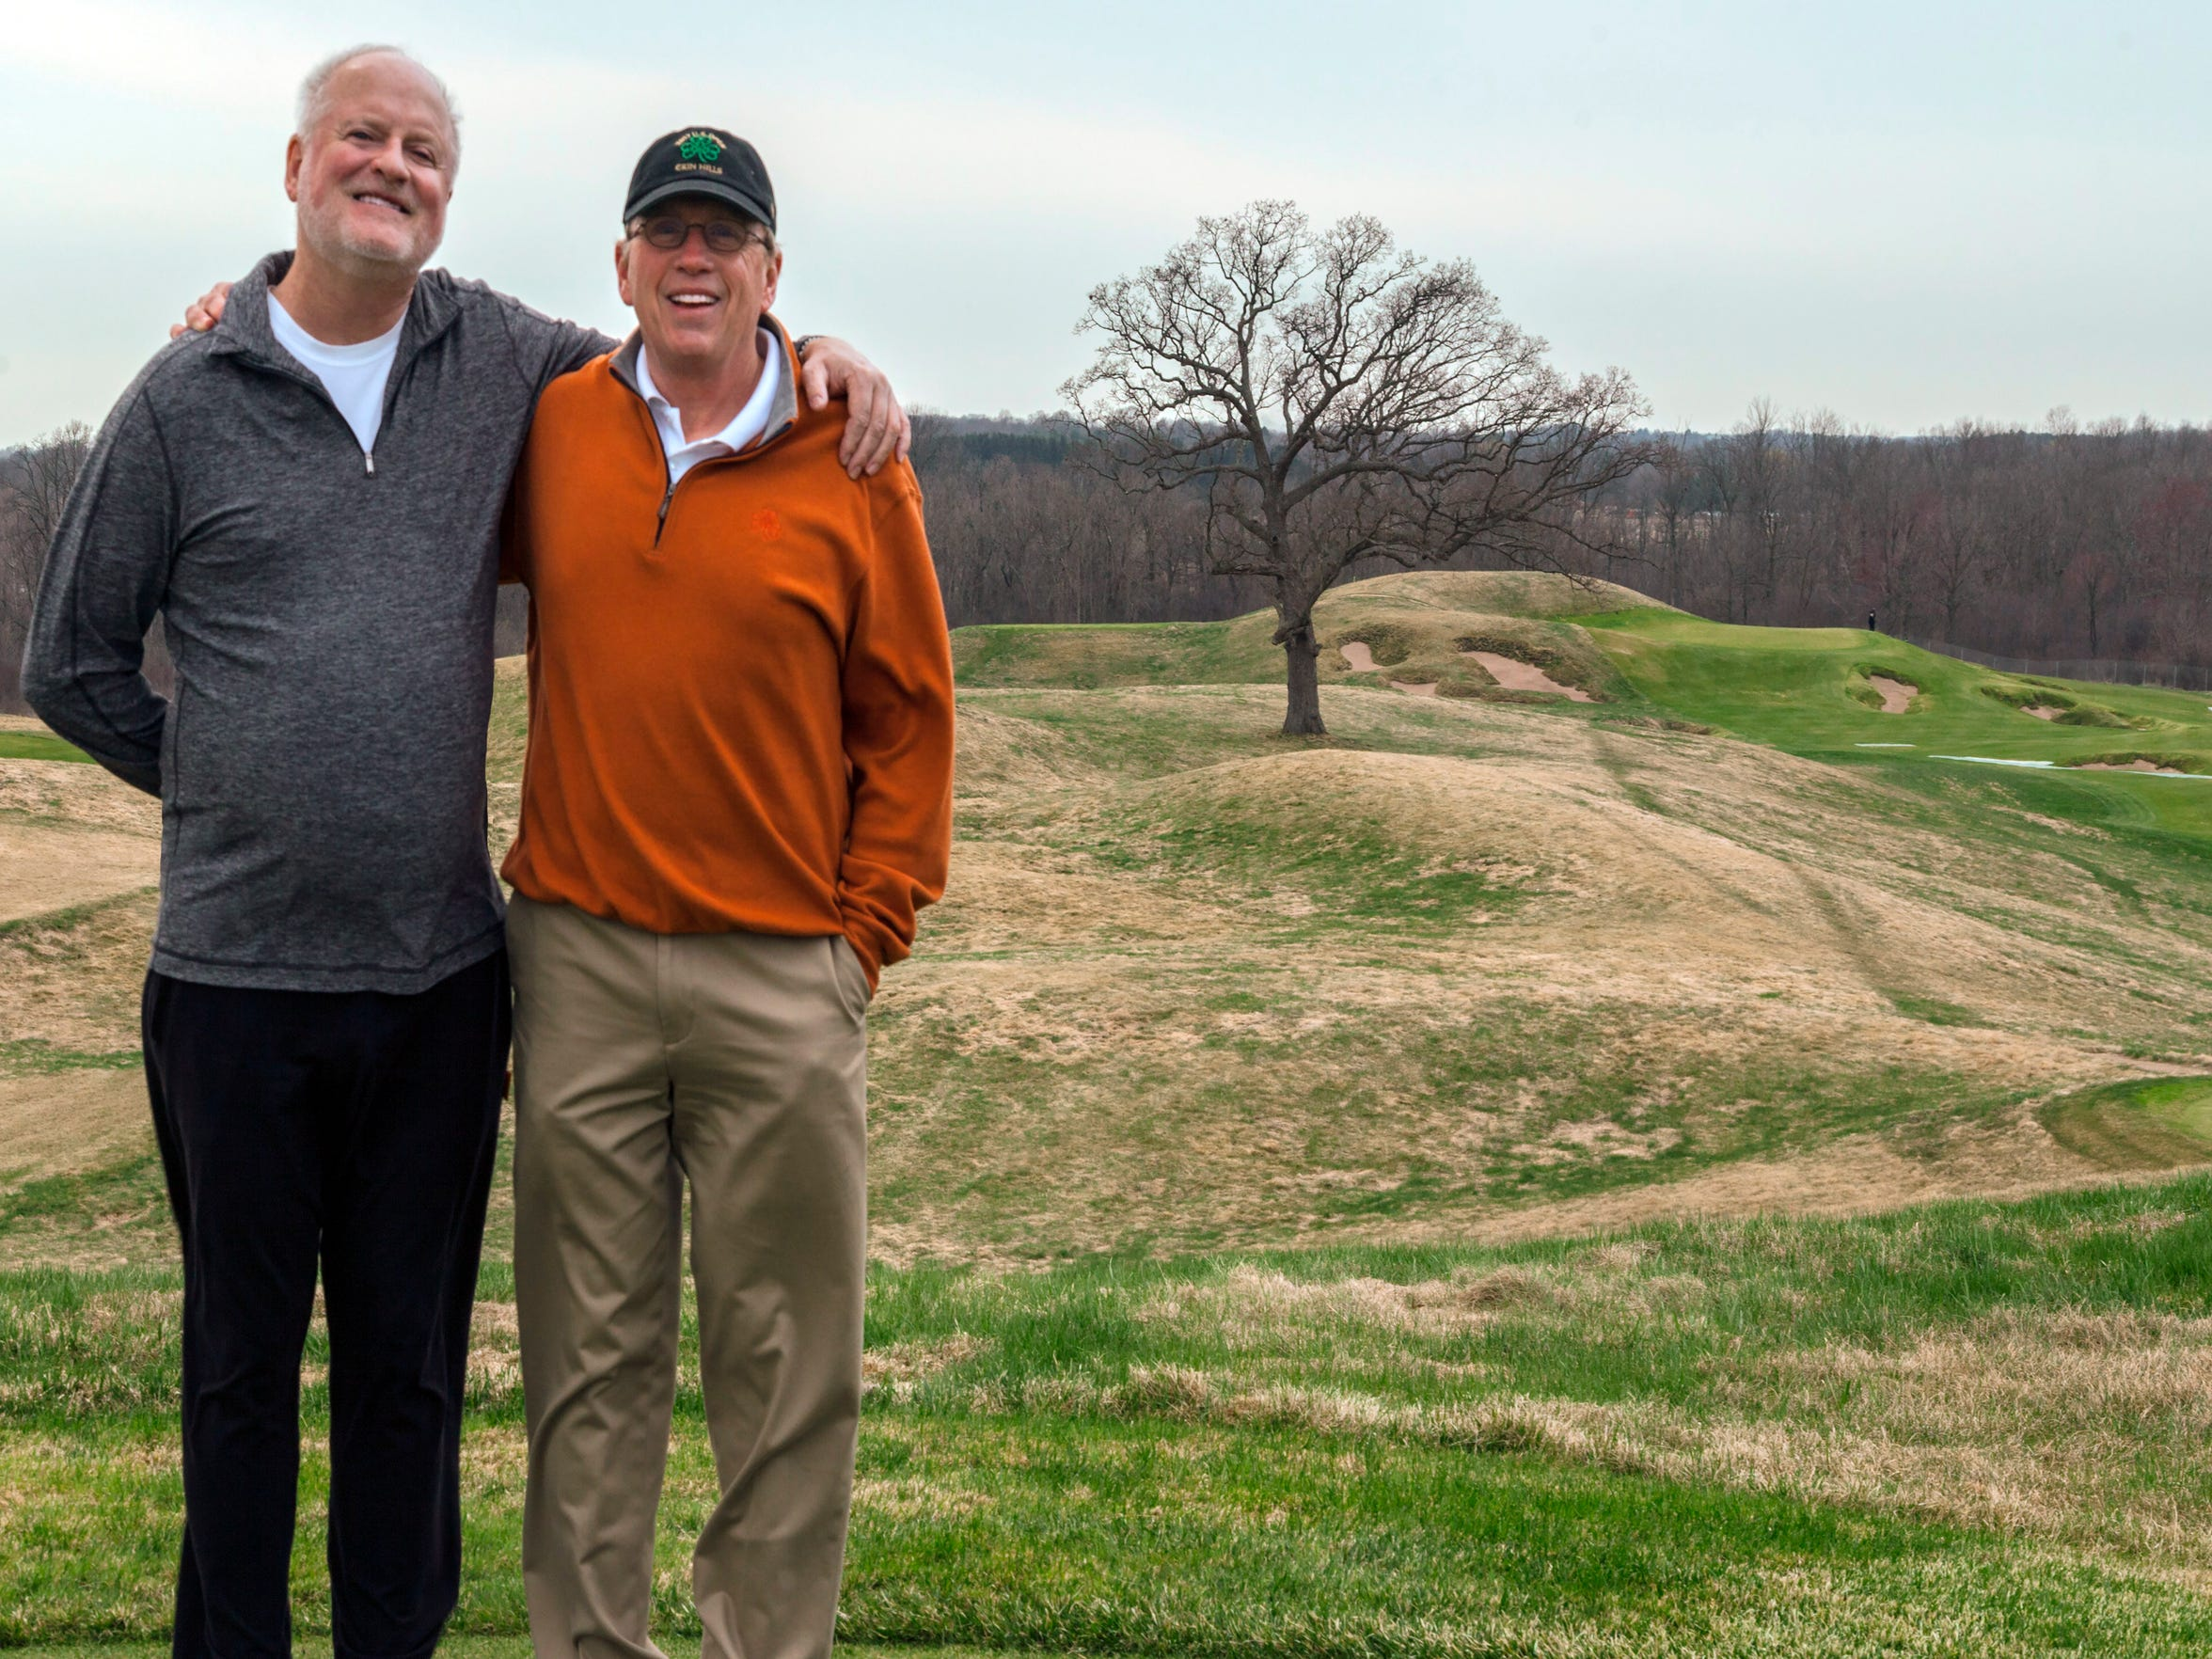 David Rasmussen (left), a Milwaukee-area golf instructor, and Paul Hundley (right), a professional photographer, pose for a photo at Erin Hills. The pair made an early bid to buy the land to build a golf course.